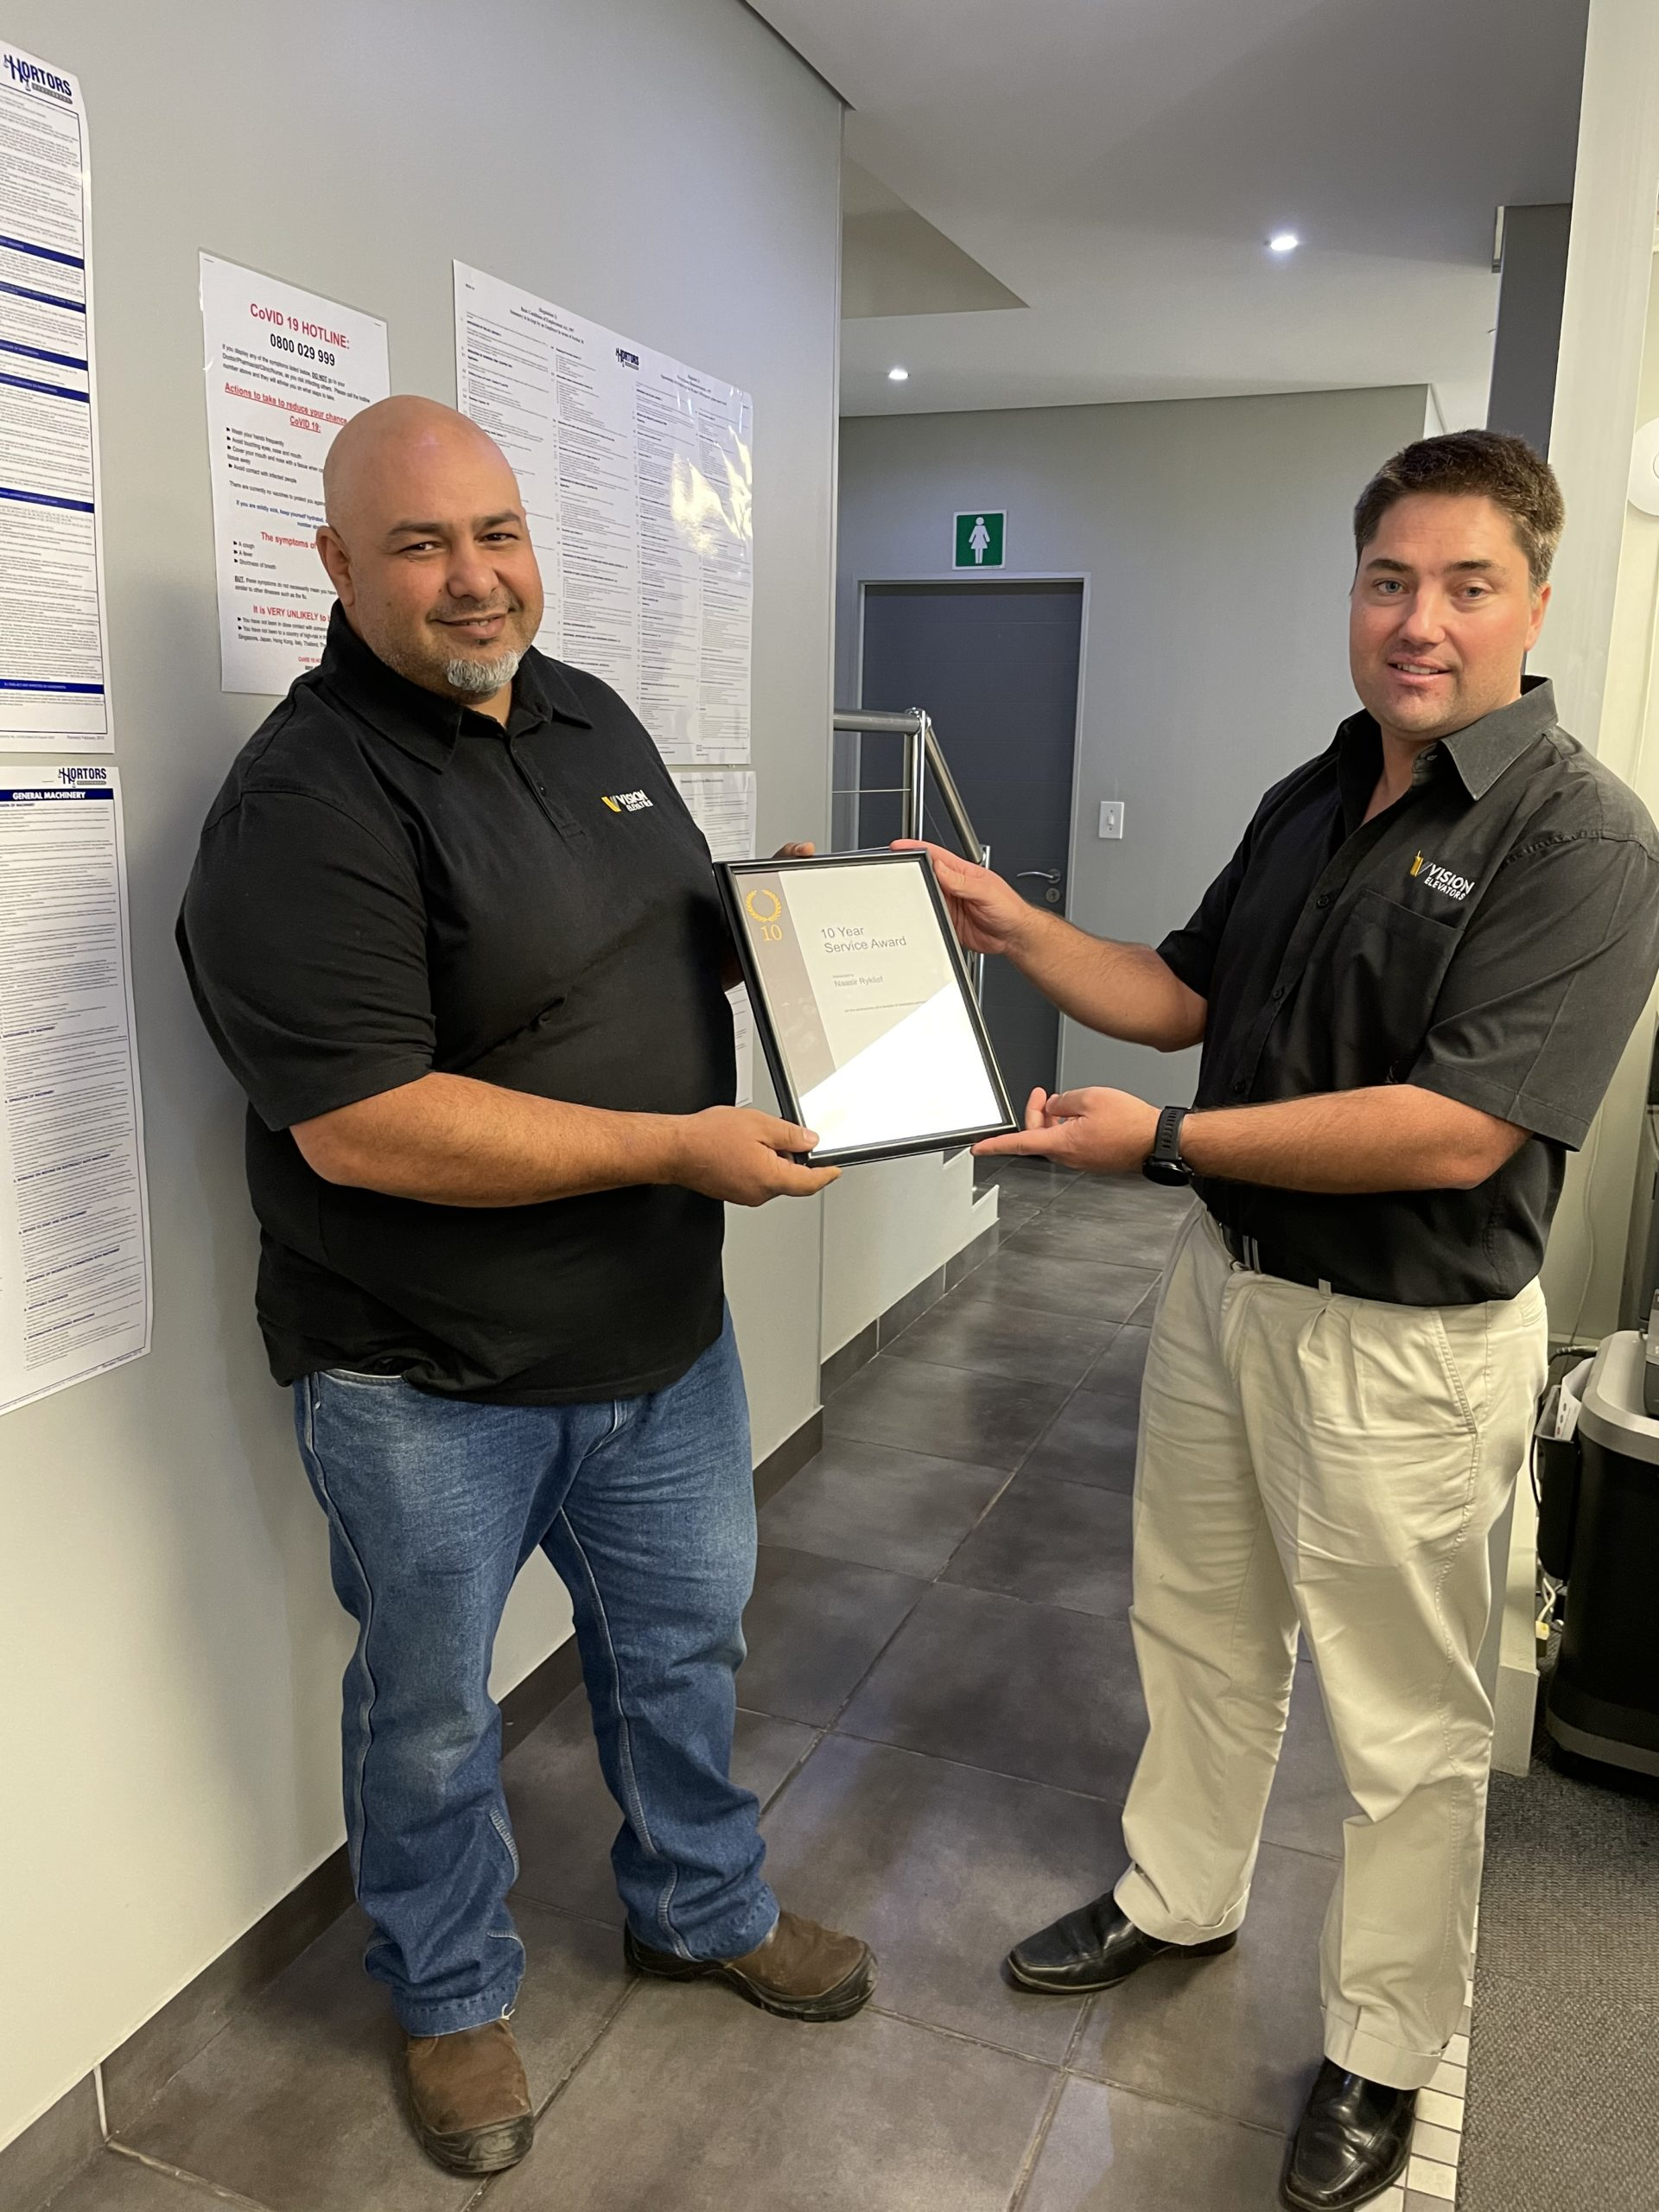 We are proud of Naasir Ryklief for 10 years with Vision Elevators.